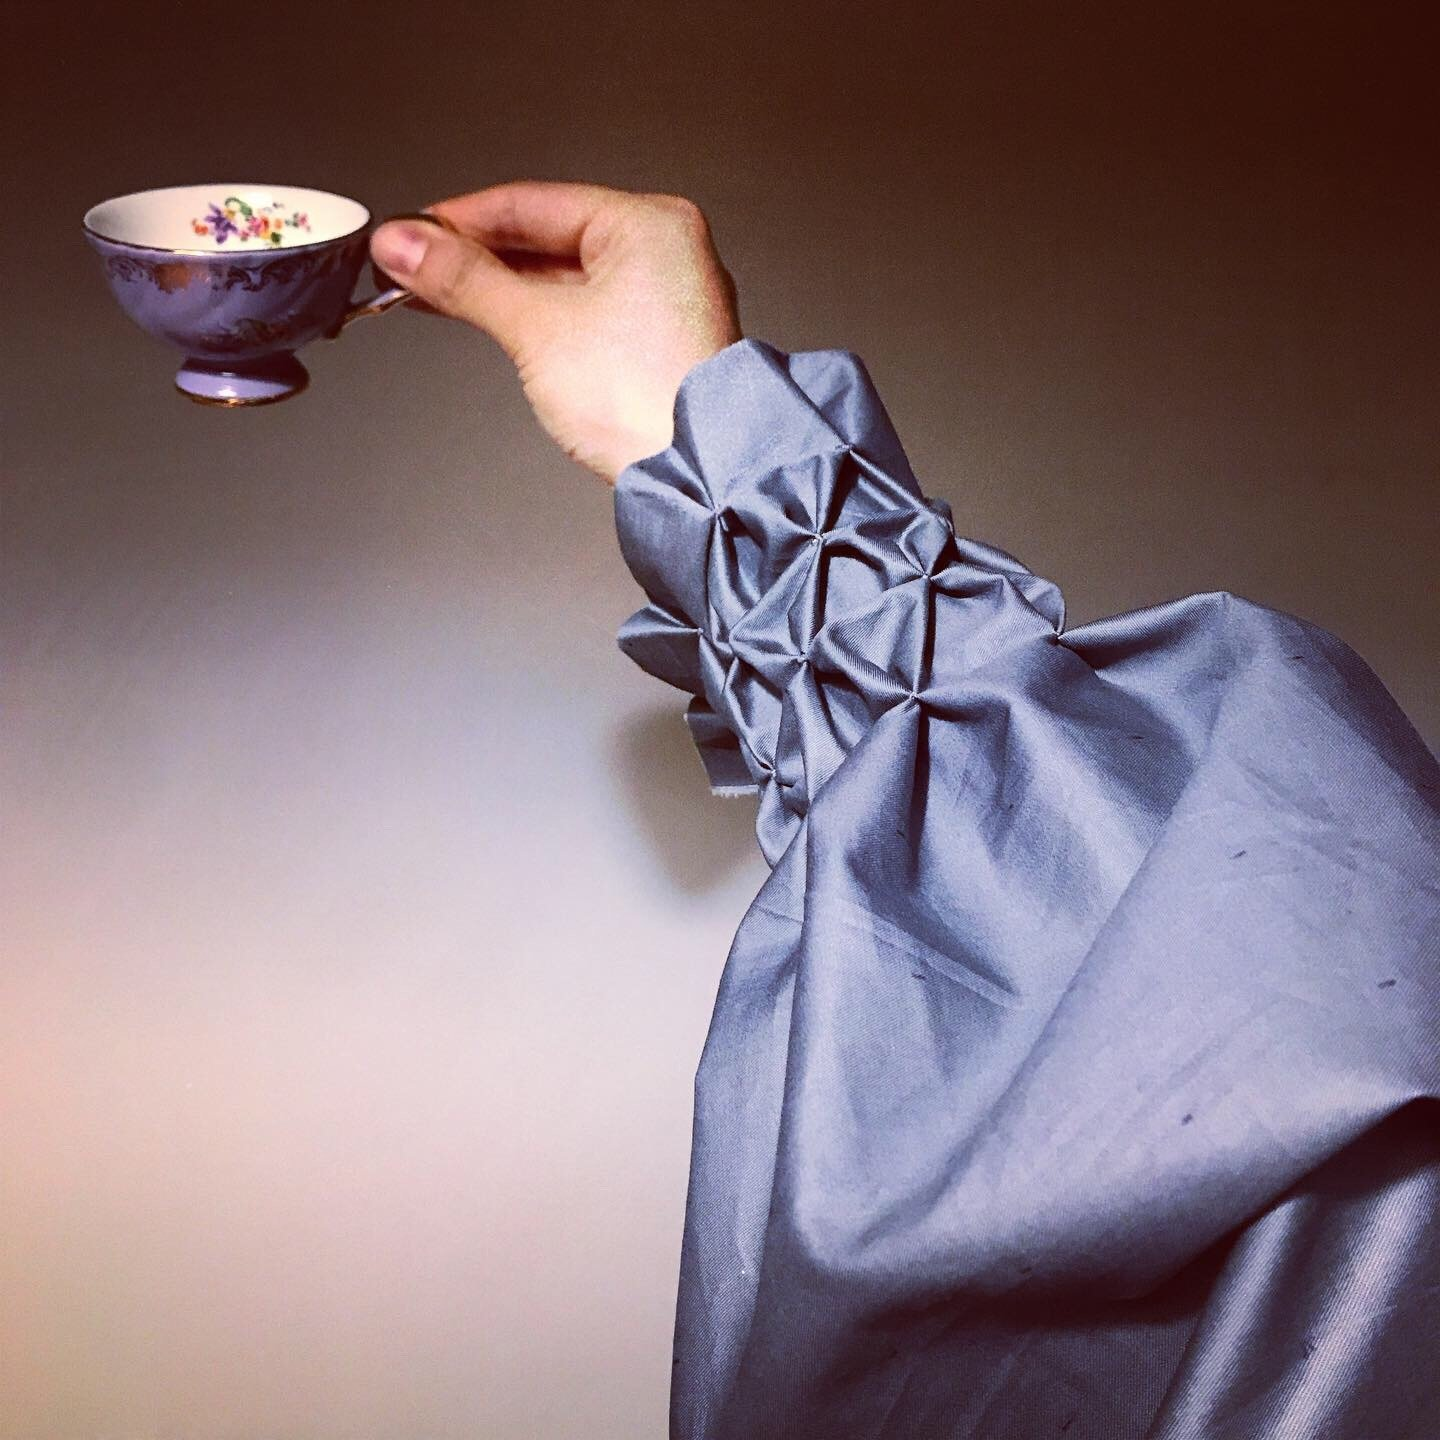 Rabia Gül was inspired by 19th-century silhouettes when she created this shirt. (Photo courtesy of Rabia Gül)